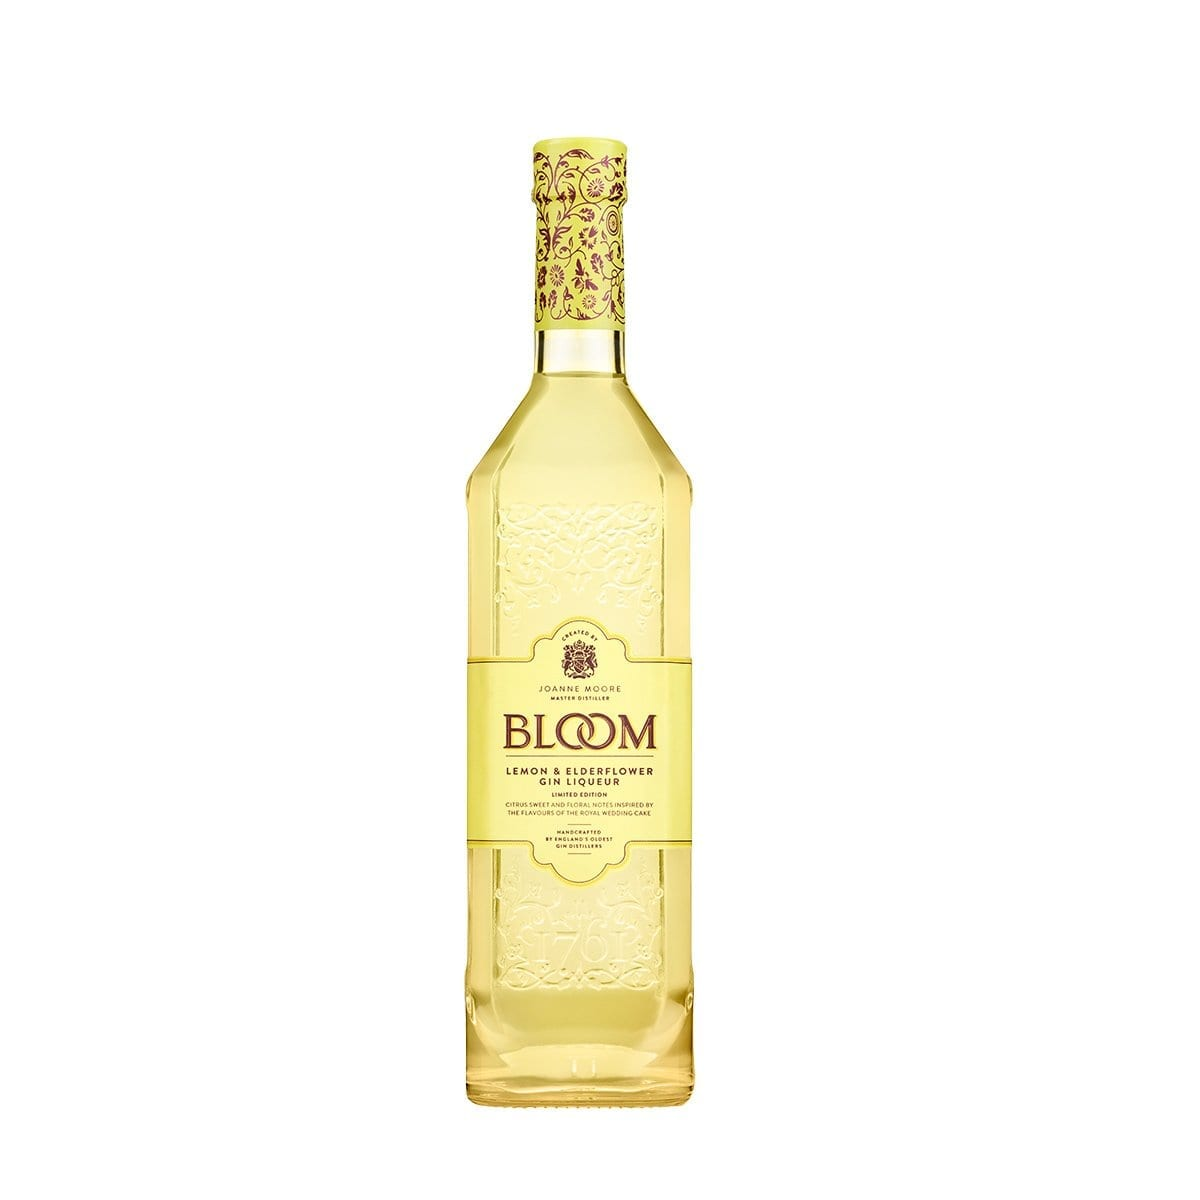 BLOOM Lemon & Elderflower gin bottle